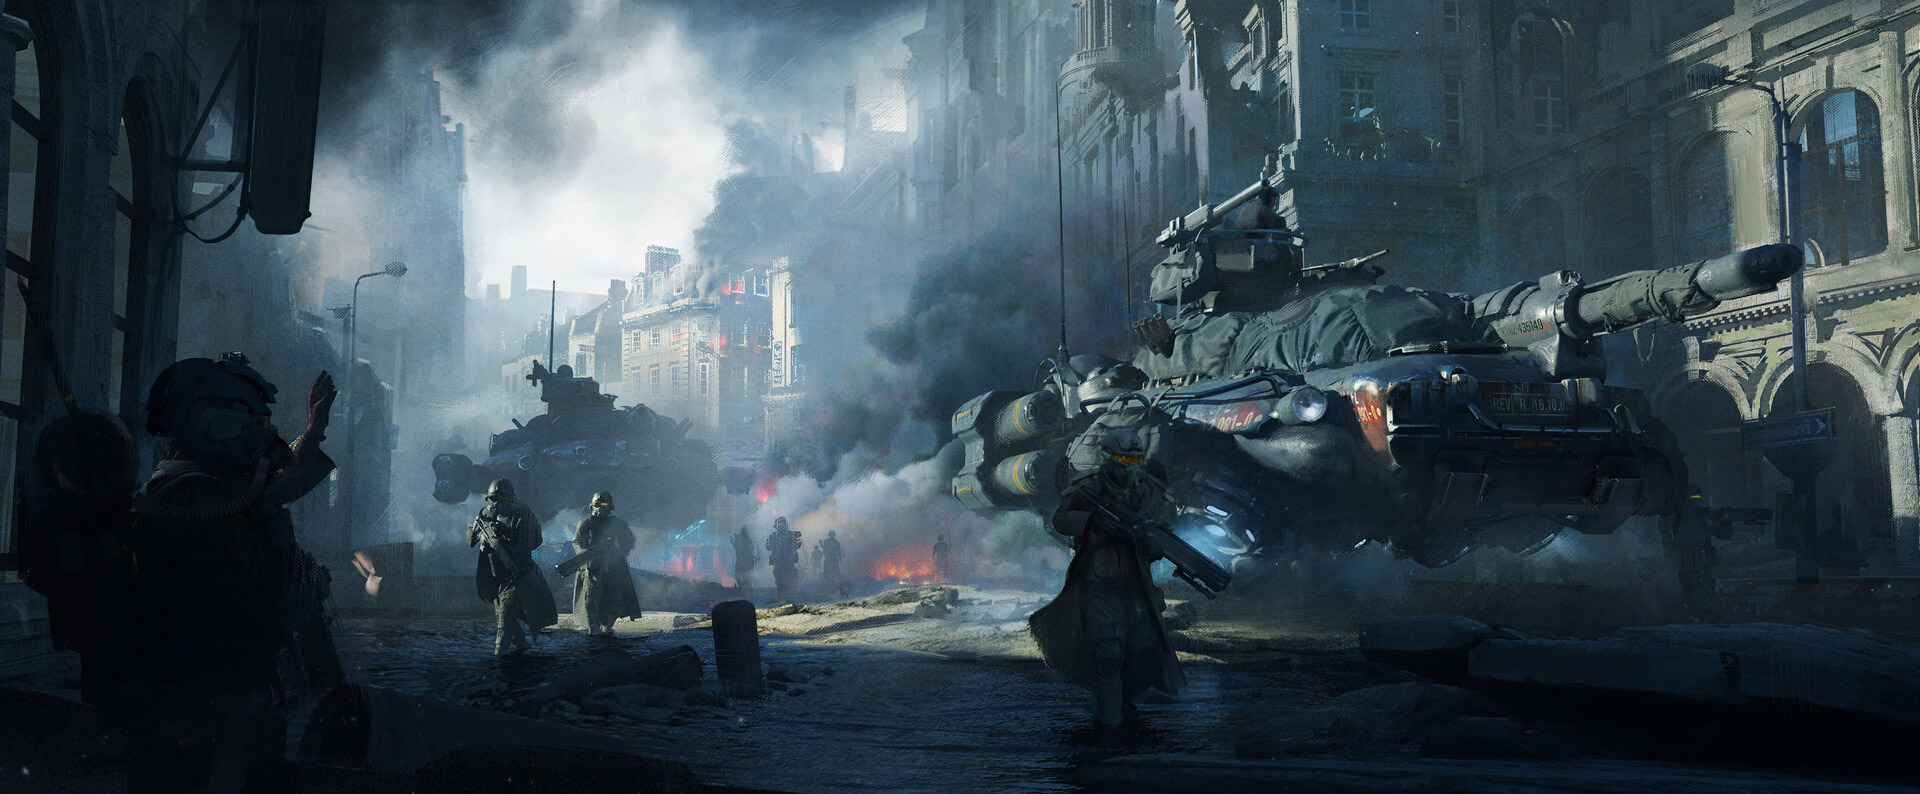 The Impressive Sci-Fi Art of Xiangzhao Xi